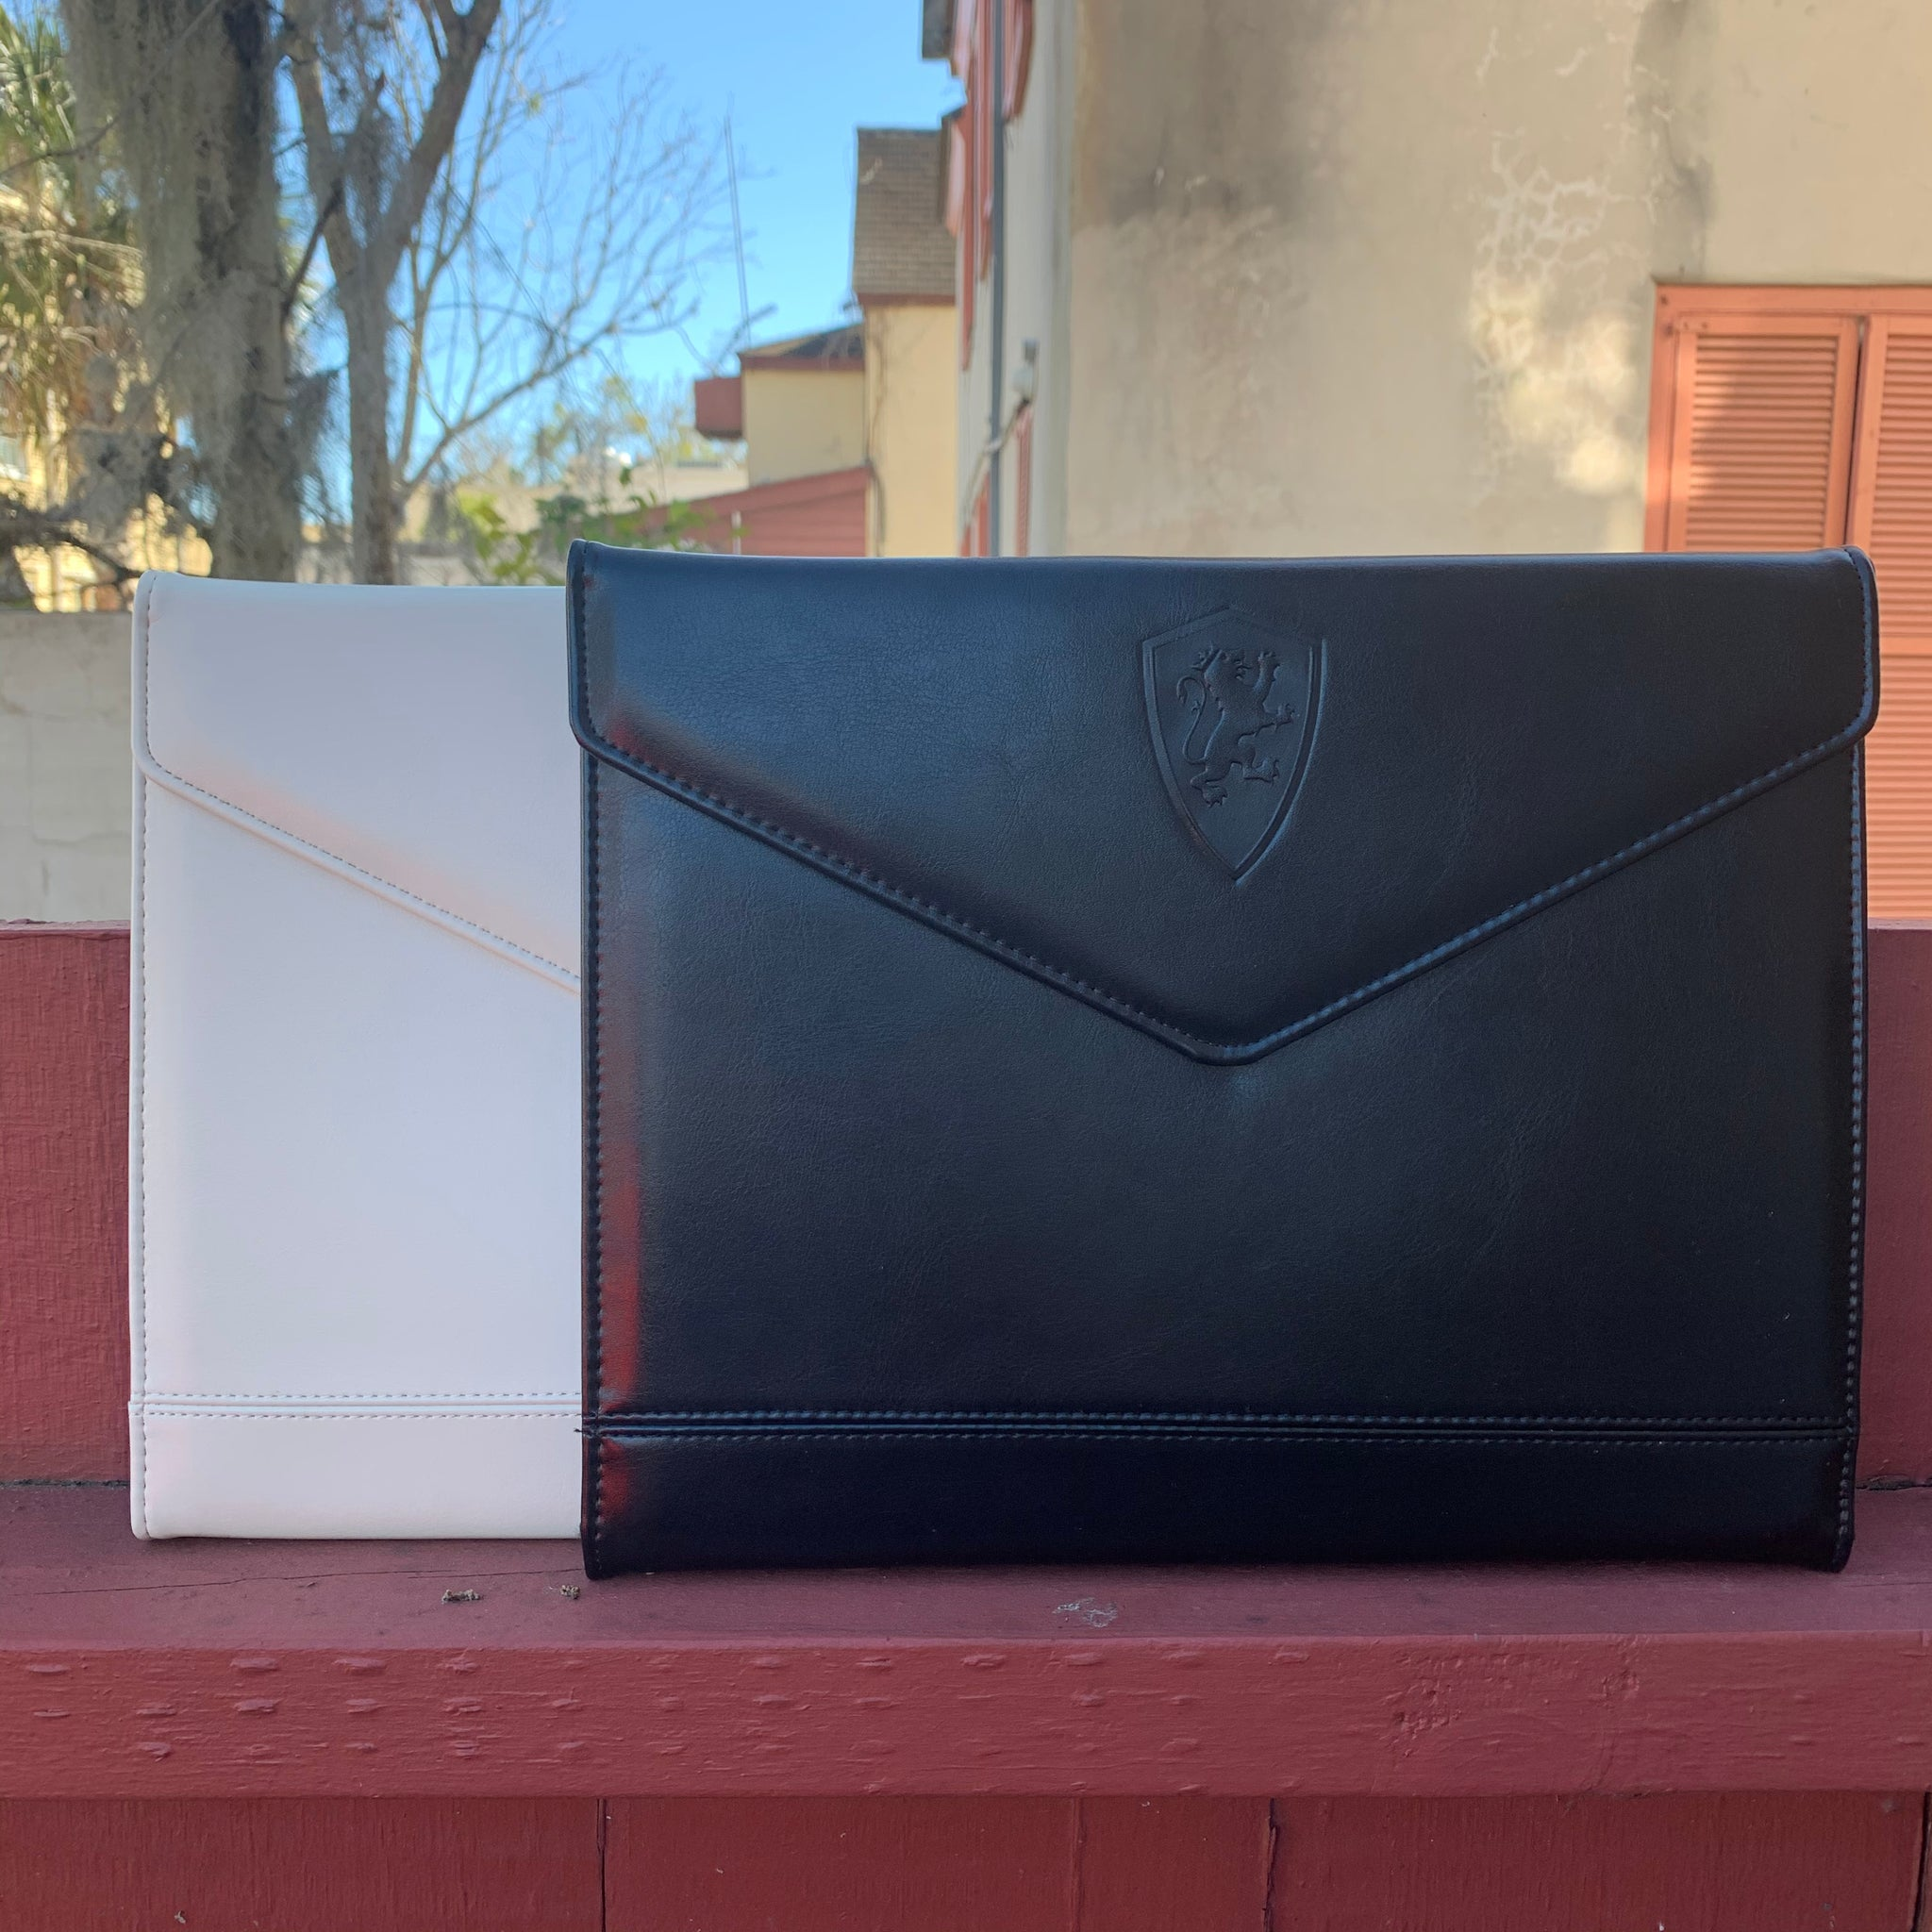 Two tri-fold padfolios; one white and the other black. they have a magnetic closure with a shield logo imprinted on them